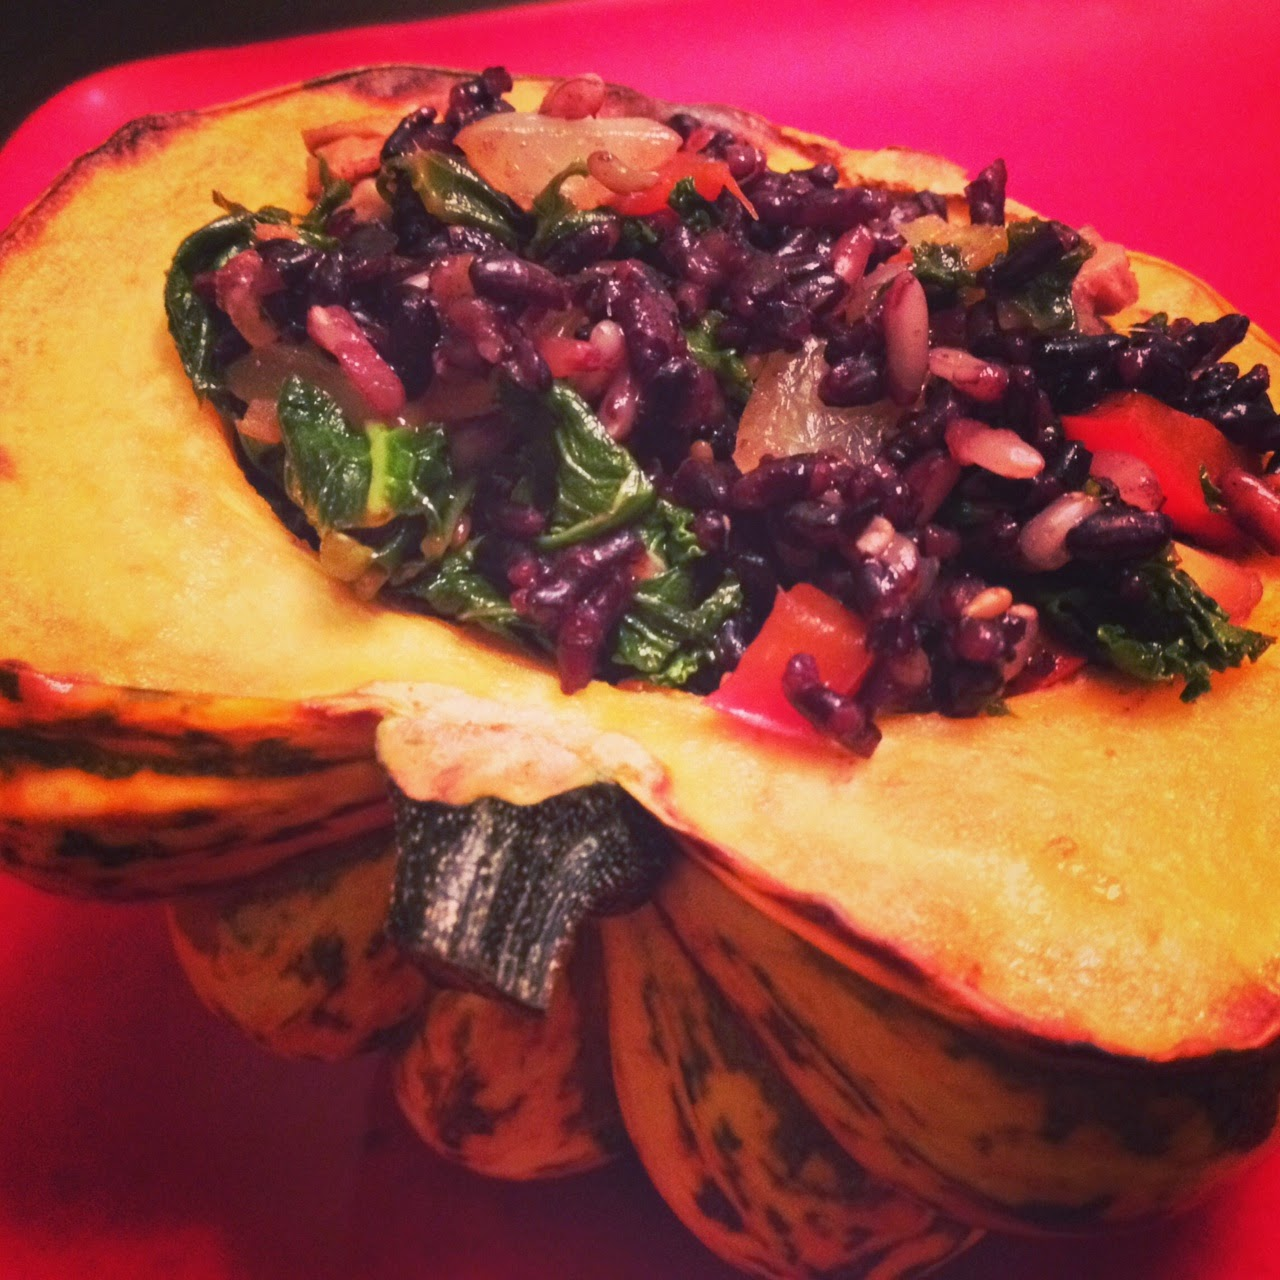 Roasted kabocha squash stuffed with forbidden black rice, wild rice, kale, onions,red bell peppers and shiitake mushrooms.